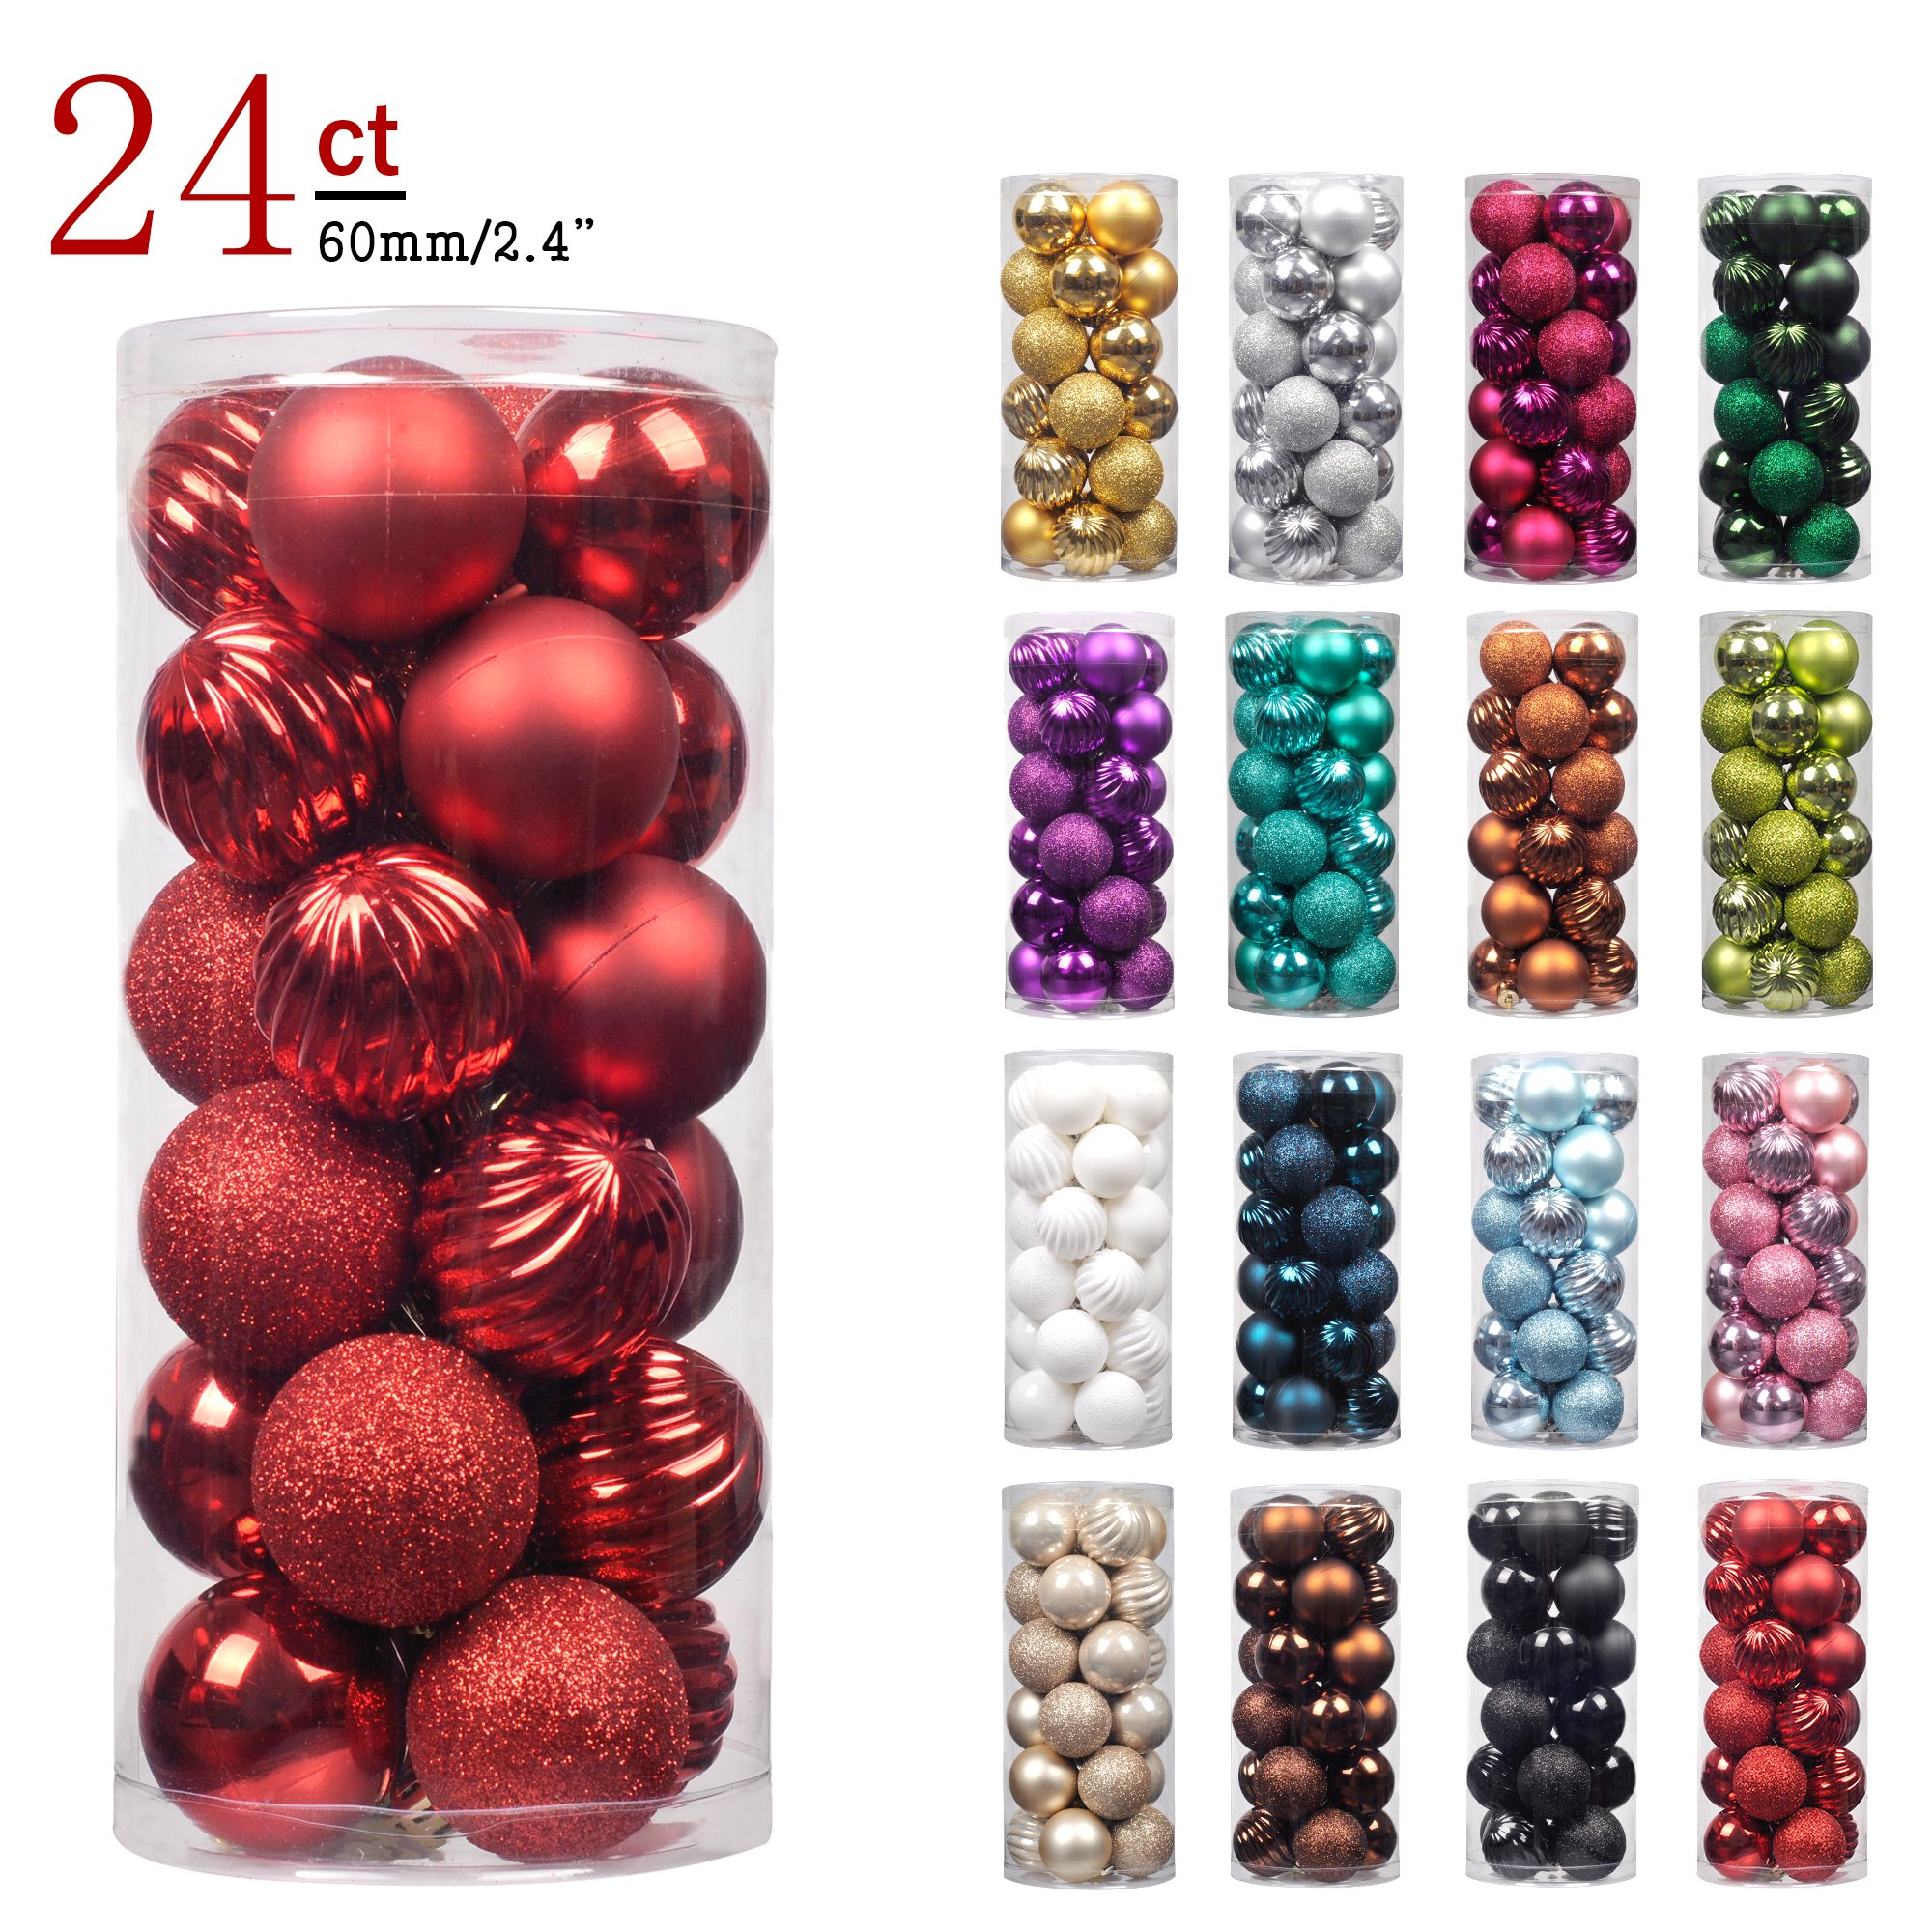 "KI Store 24ct Christmas Ball Ornaments Shatterproof Christmas Decorations Tree Balls for Holiday Wedding Party Decoration, Tree Ornaments Hooks included 2.36"" (60mm Red)"